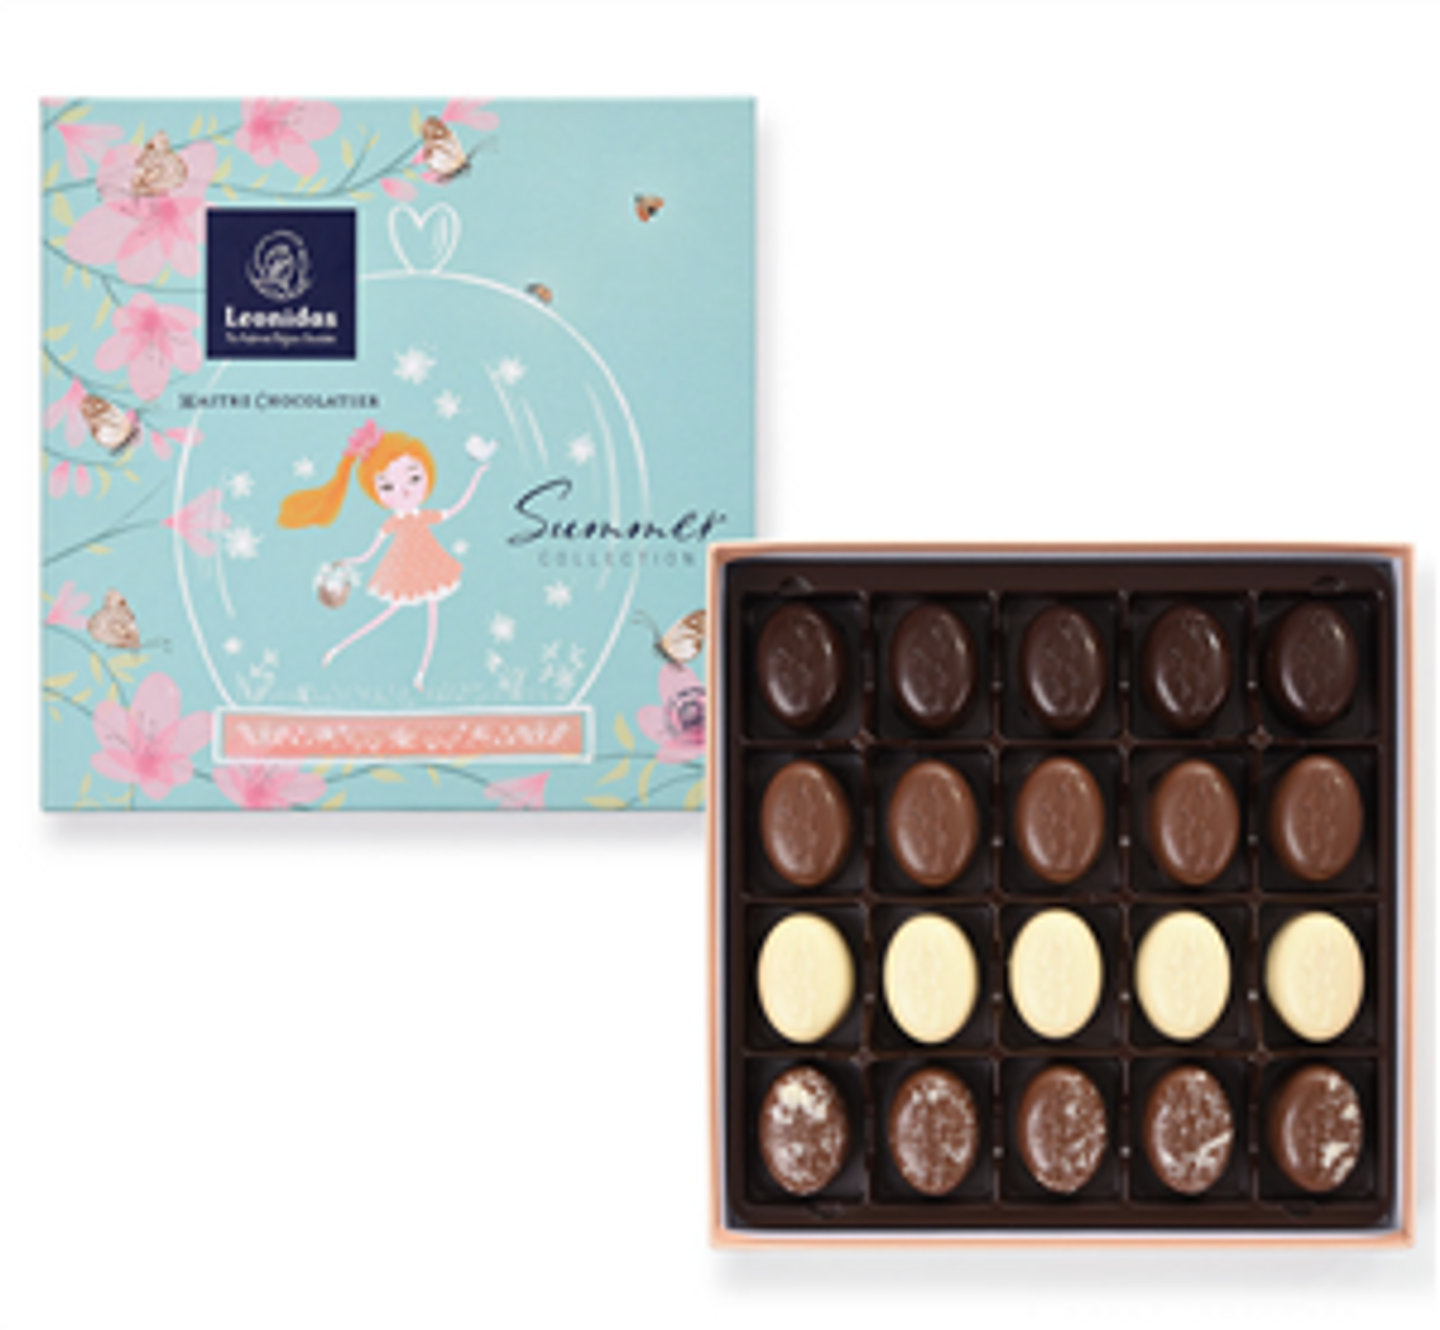 Irresistible Summer Collection of 20 chocolates